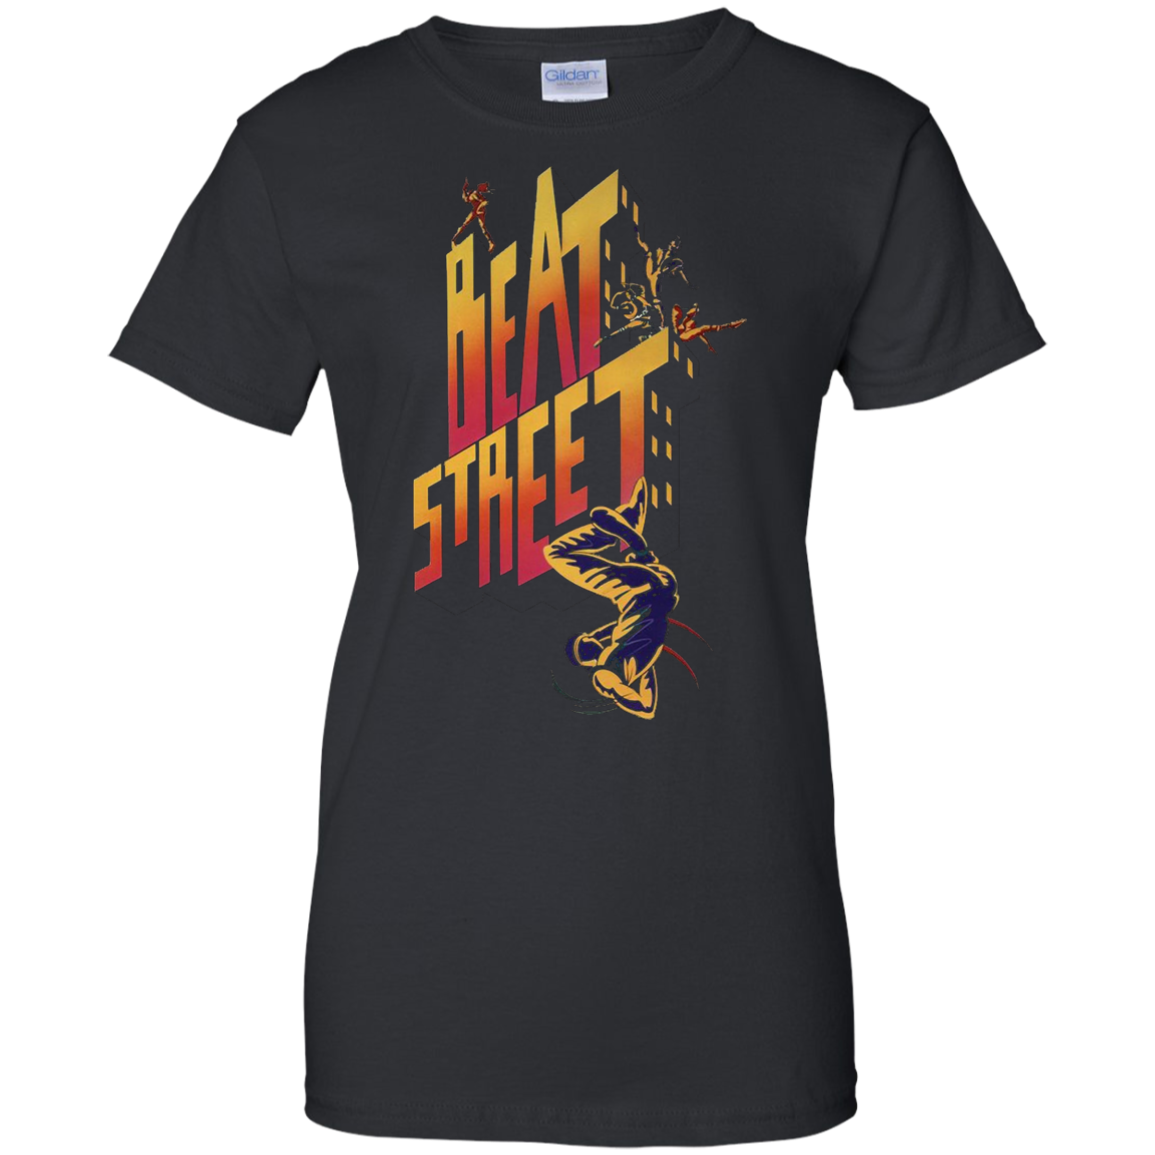 BEAT STREET Shirt - Limited Edition